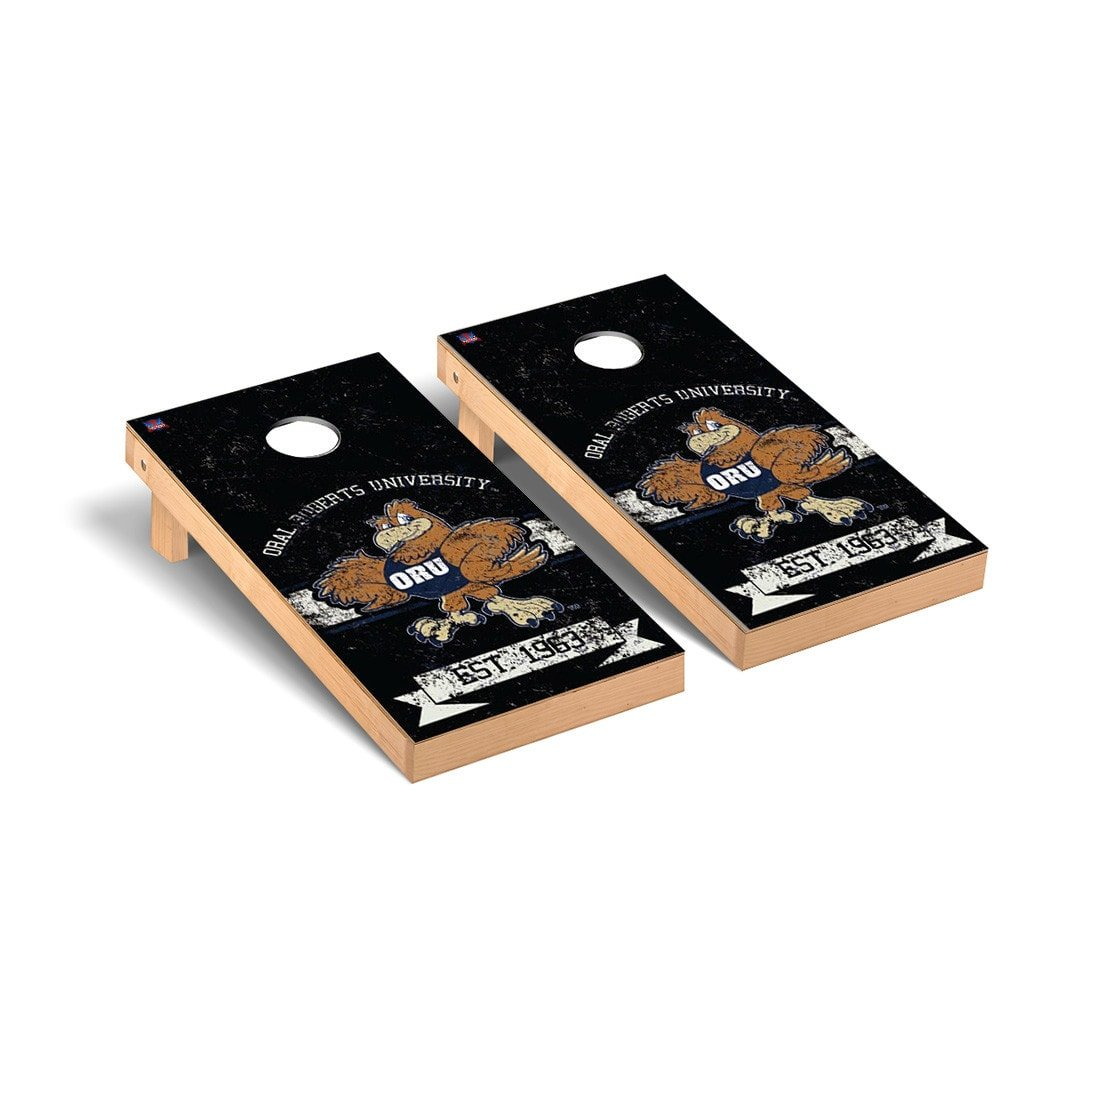 Oral Roberts oru Golden Eagles Cornhole Game Setバナーヴィンテージバージョン B01133Q8XK